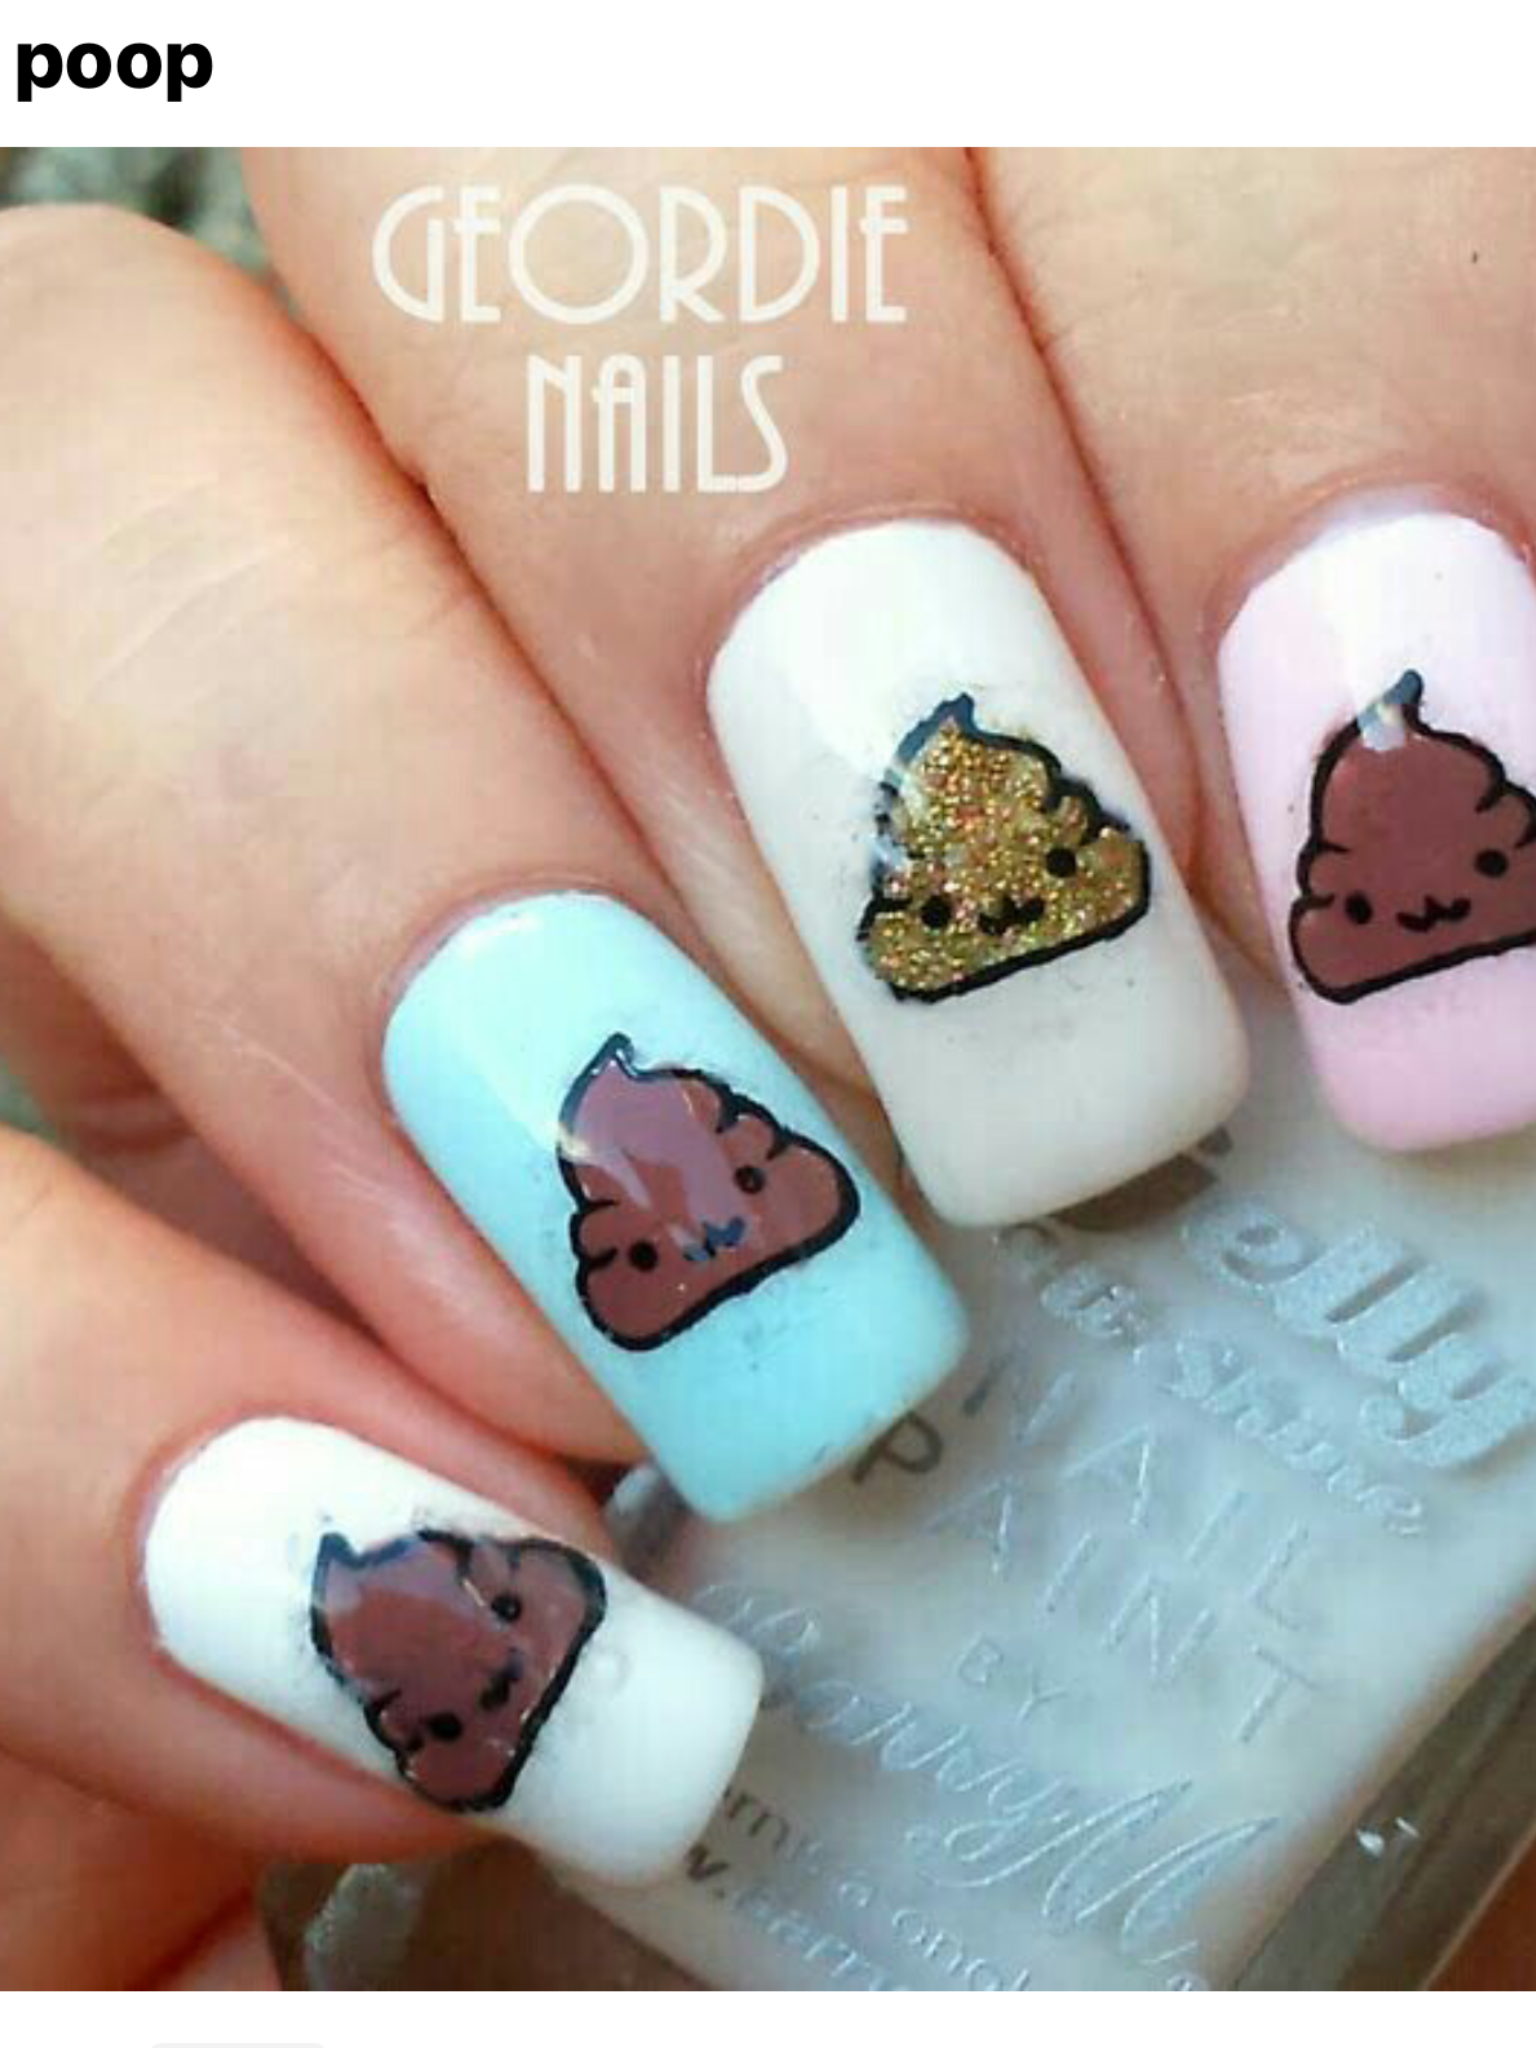 Pin by tallulah is on my style pinterest toe nail designs i wanted to make a friend giggle by replicating the poop emoji on my nails so today i have the cheeky and questionable result to s prinsesfo Choice Image